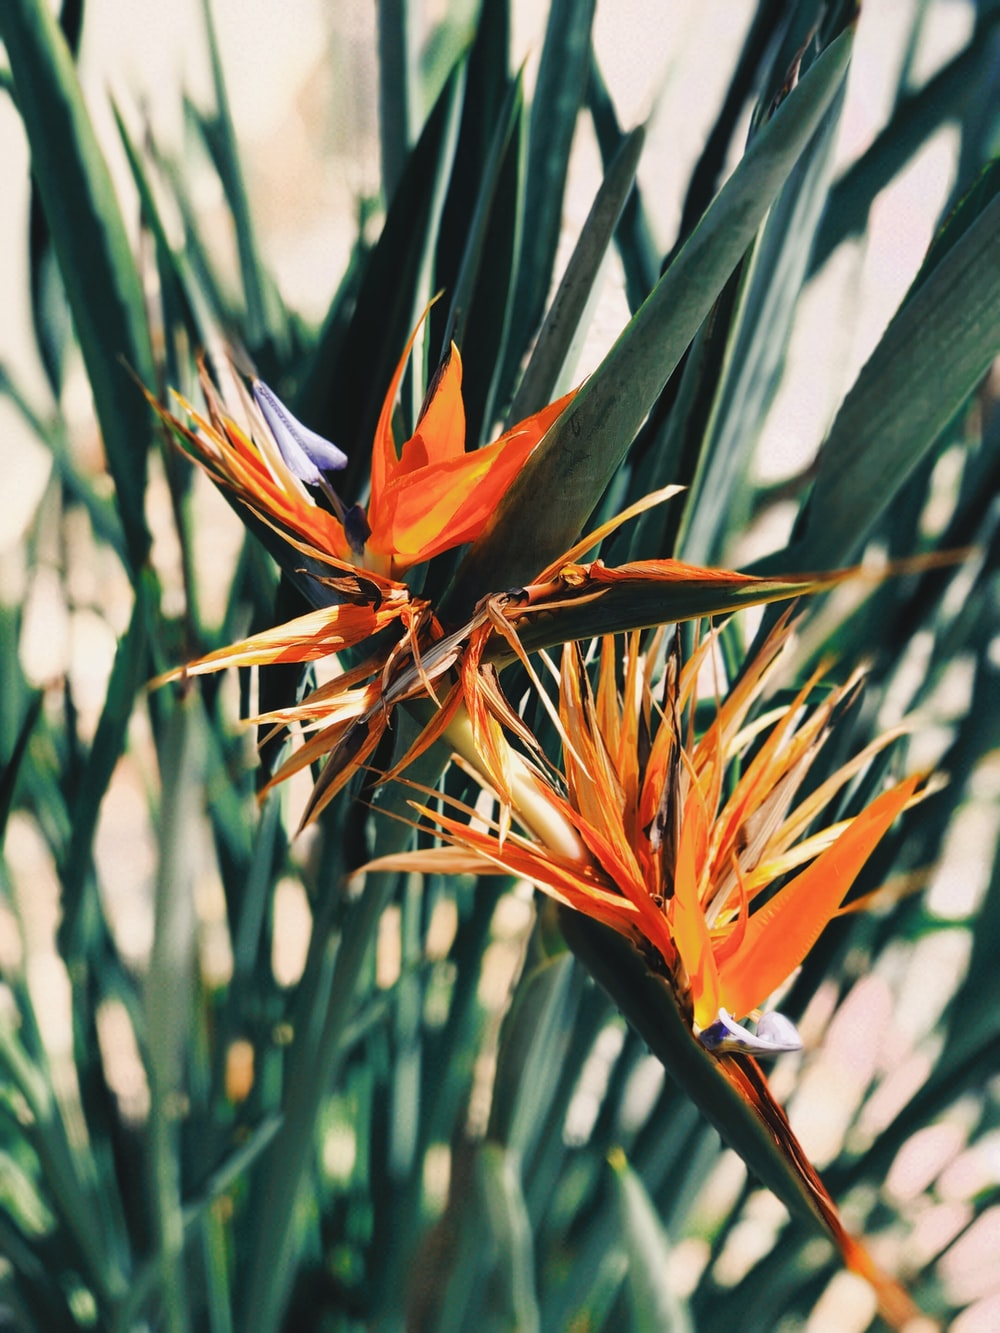 orange and blue birds of paradise flower in bloom during daytime